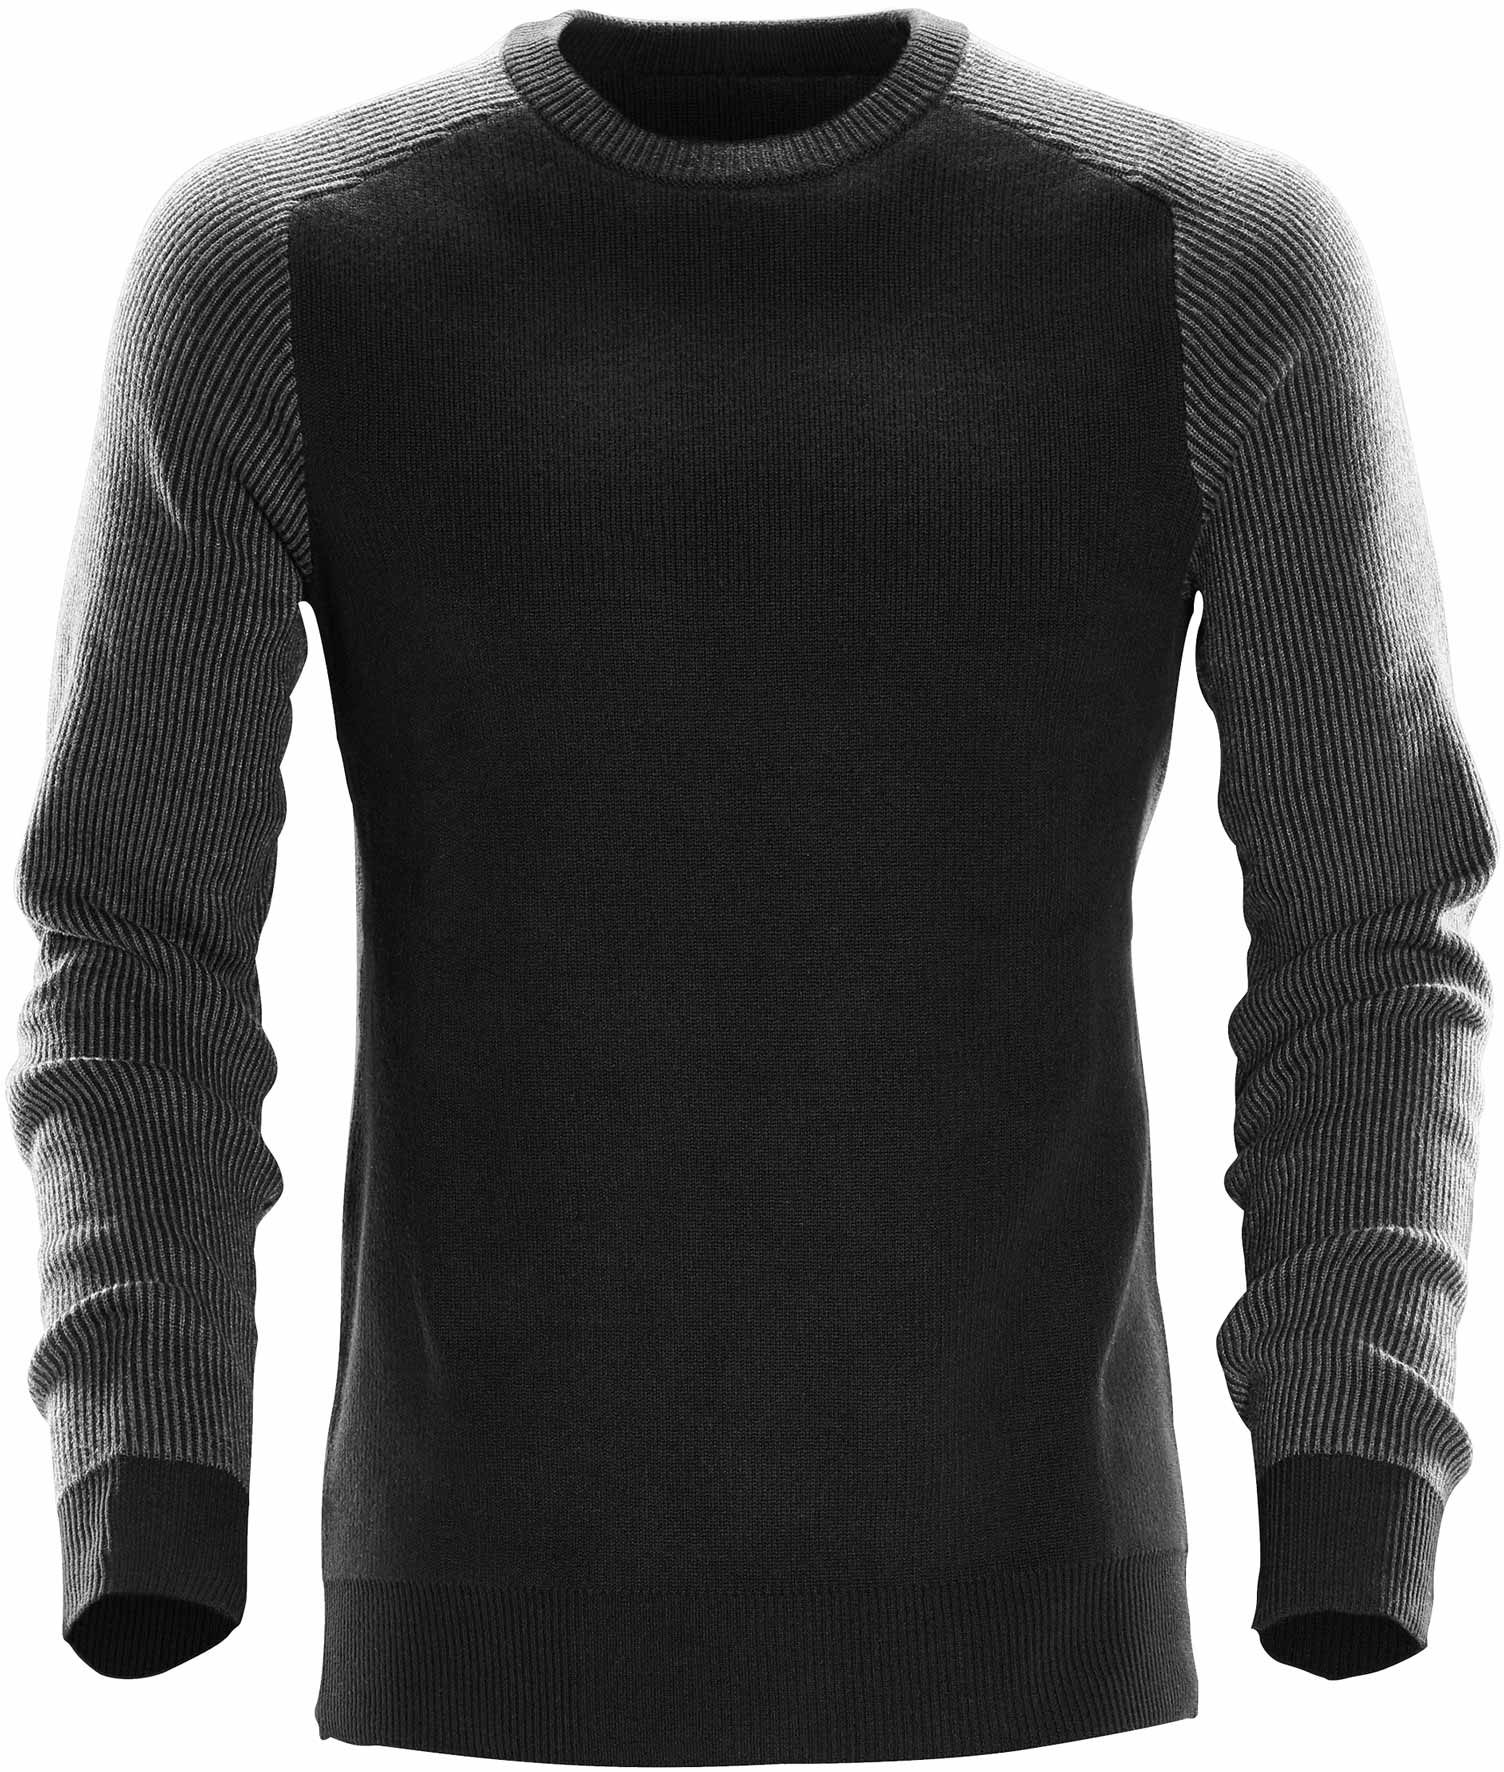 Men's Onyx Sweater